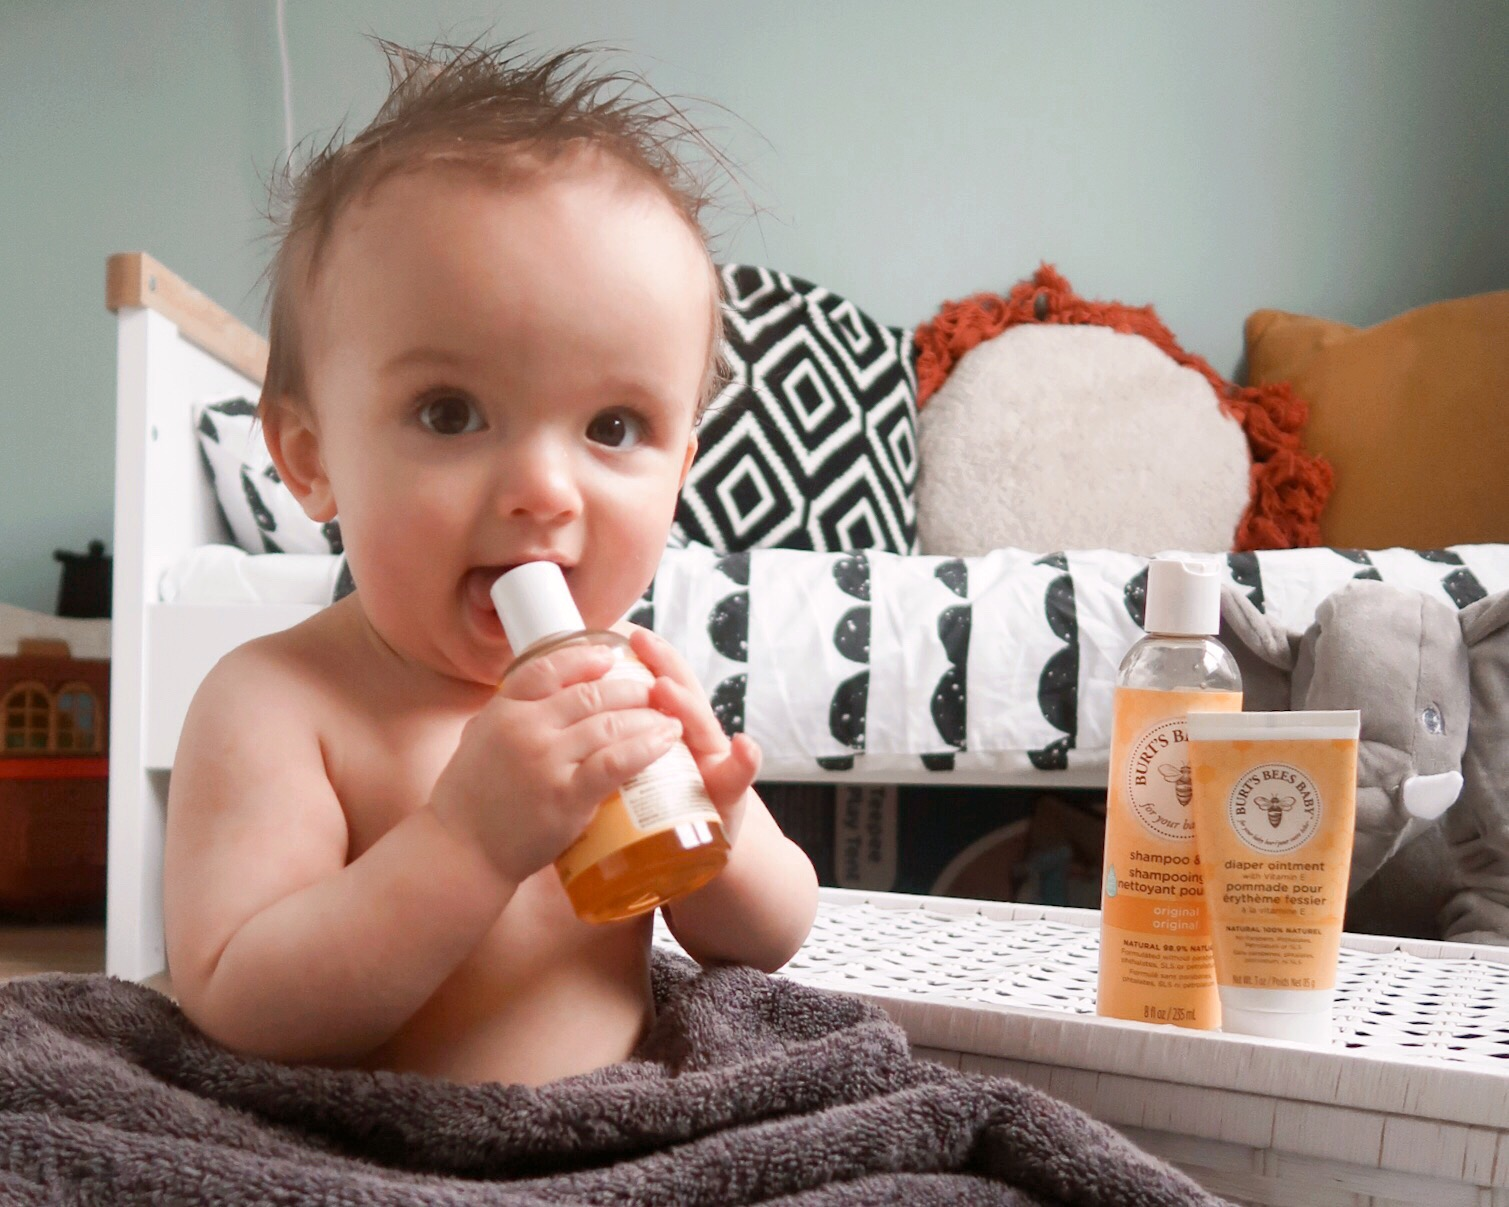 BURTS BEES BABY OIL REVIEW